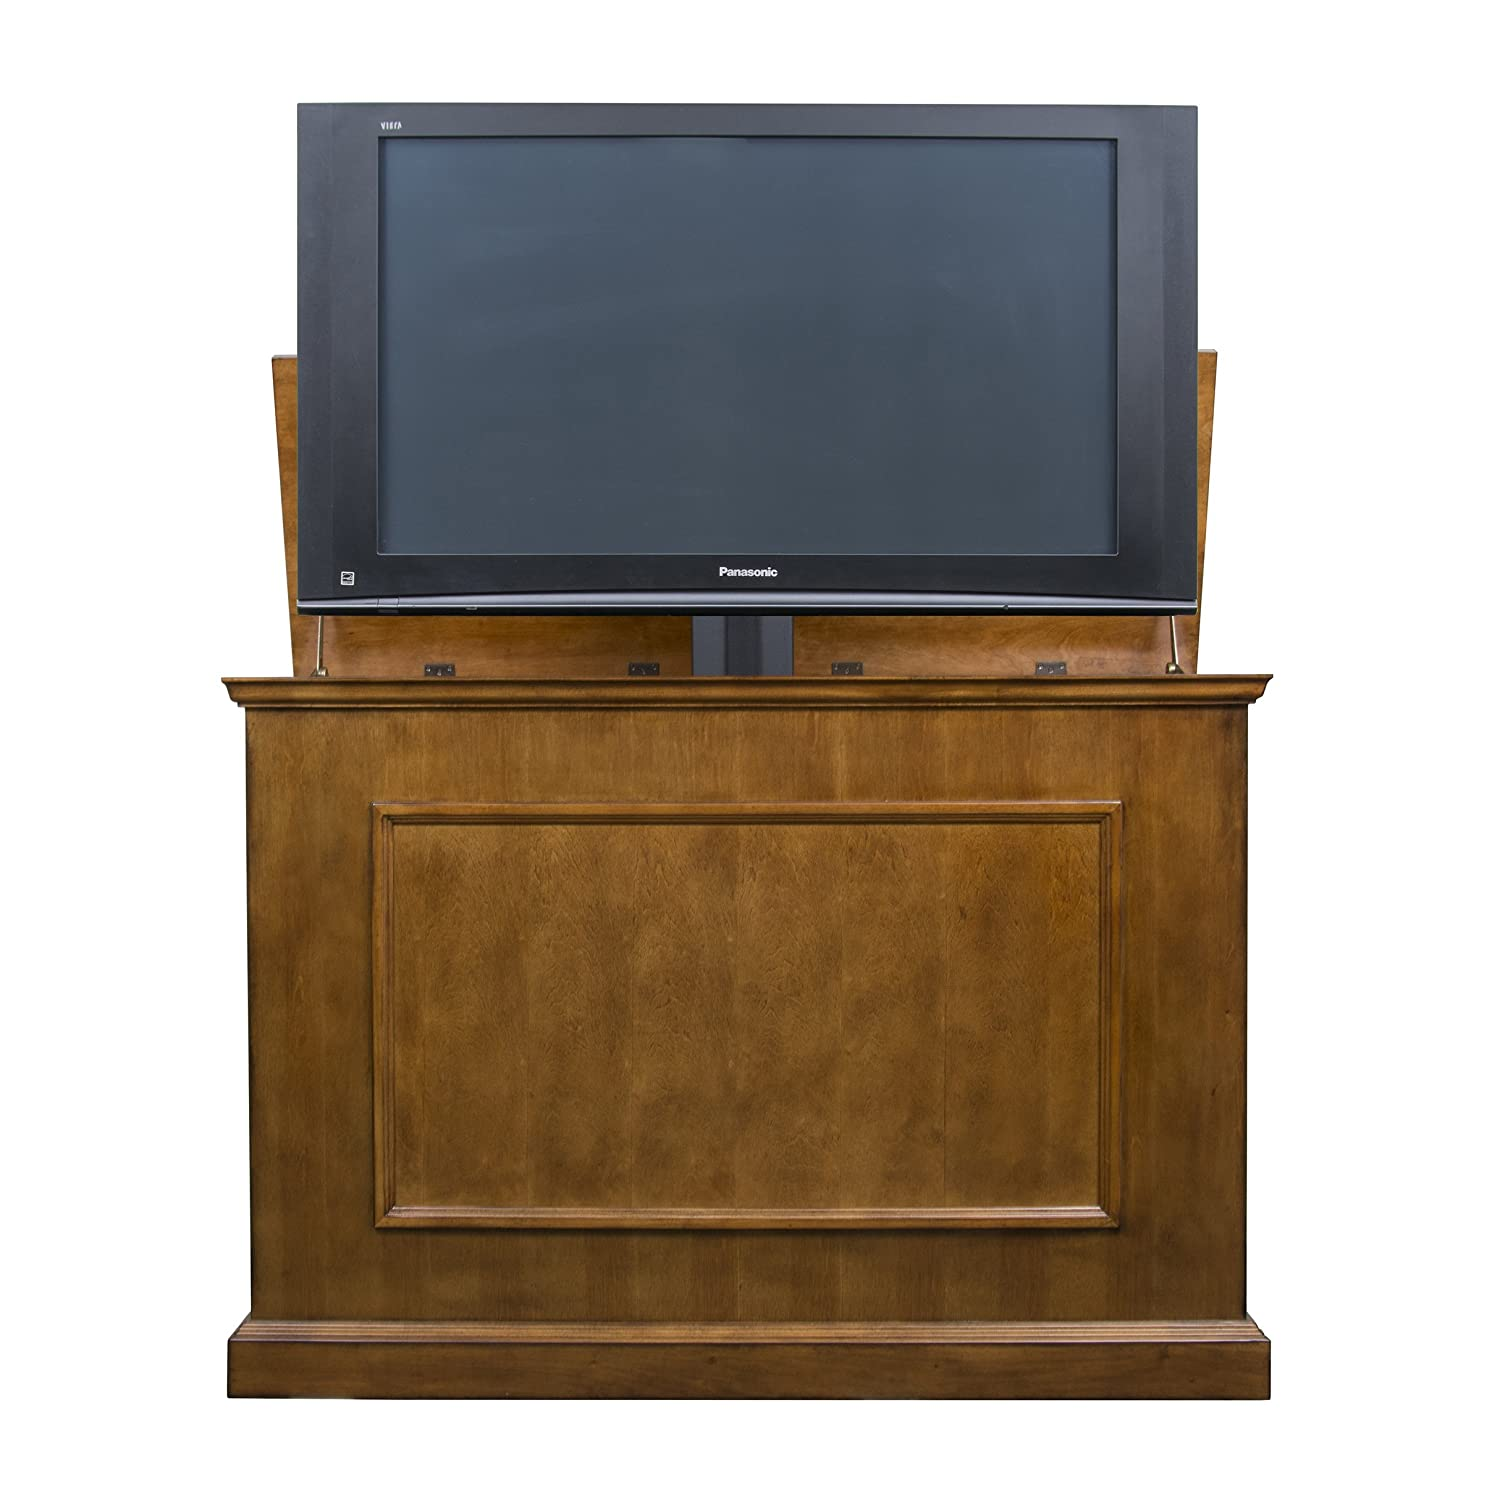 Touchstone 72009 – Elevate TV Lift Cabinet – TVs Up to 50 Inch Diagonal 45 Wide TV Honey Oak – 50 in Wide – Quiet Quick Whisper Lift II TV Lift Wired Wireless RF Remote